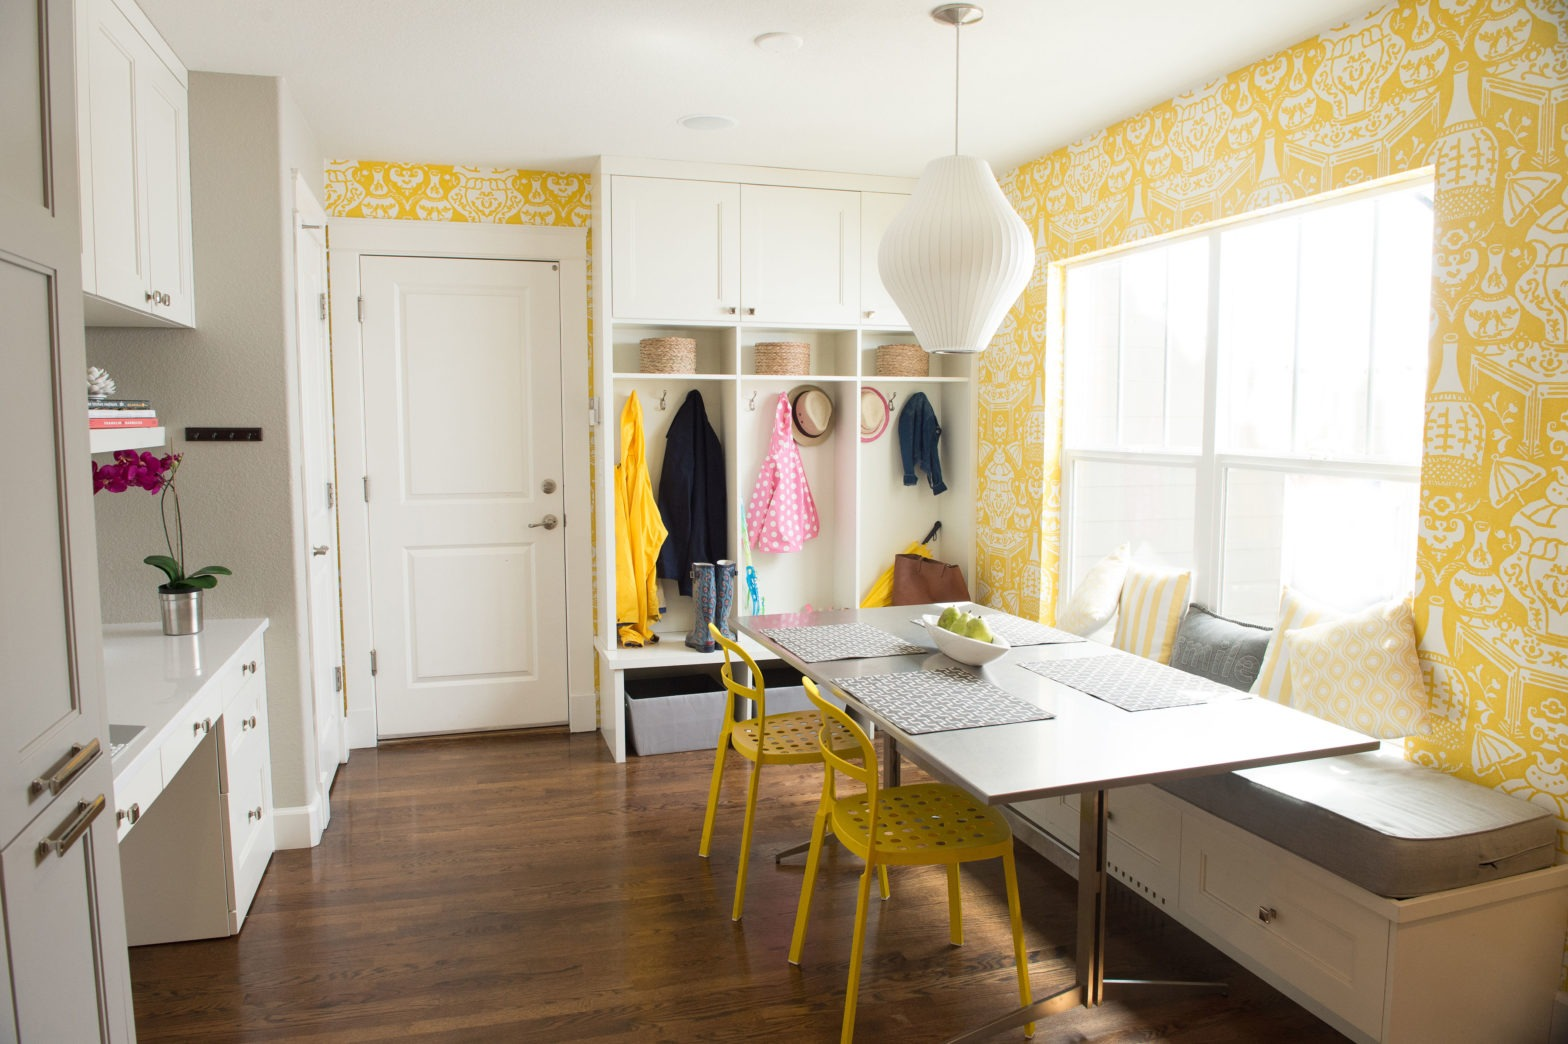 Bright Yellow wallpaper kitchen nook